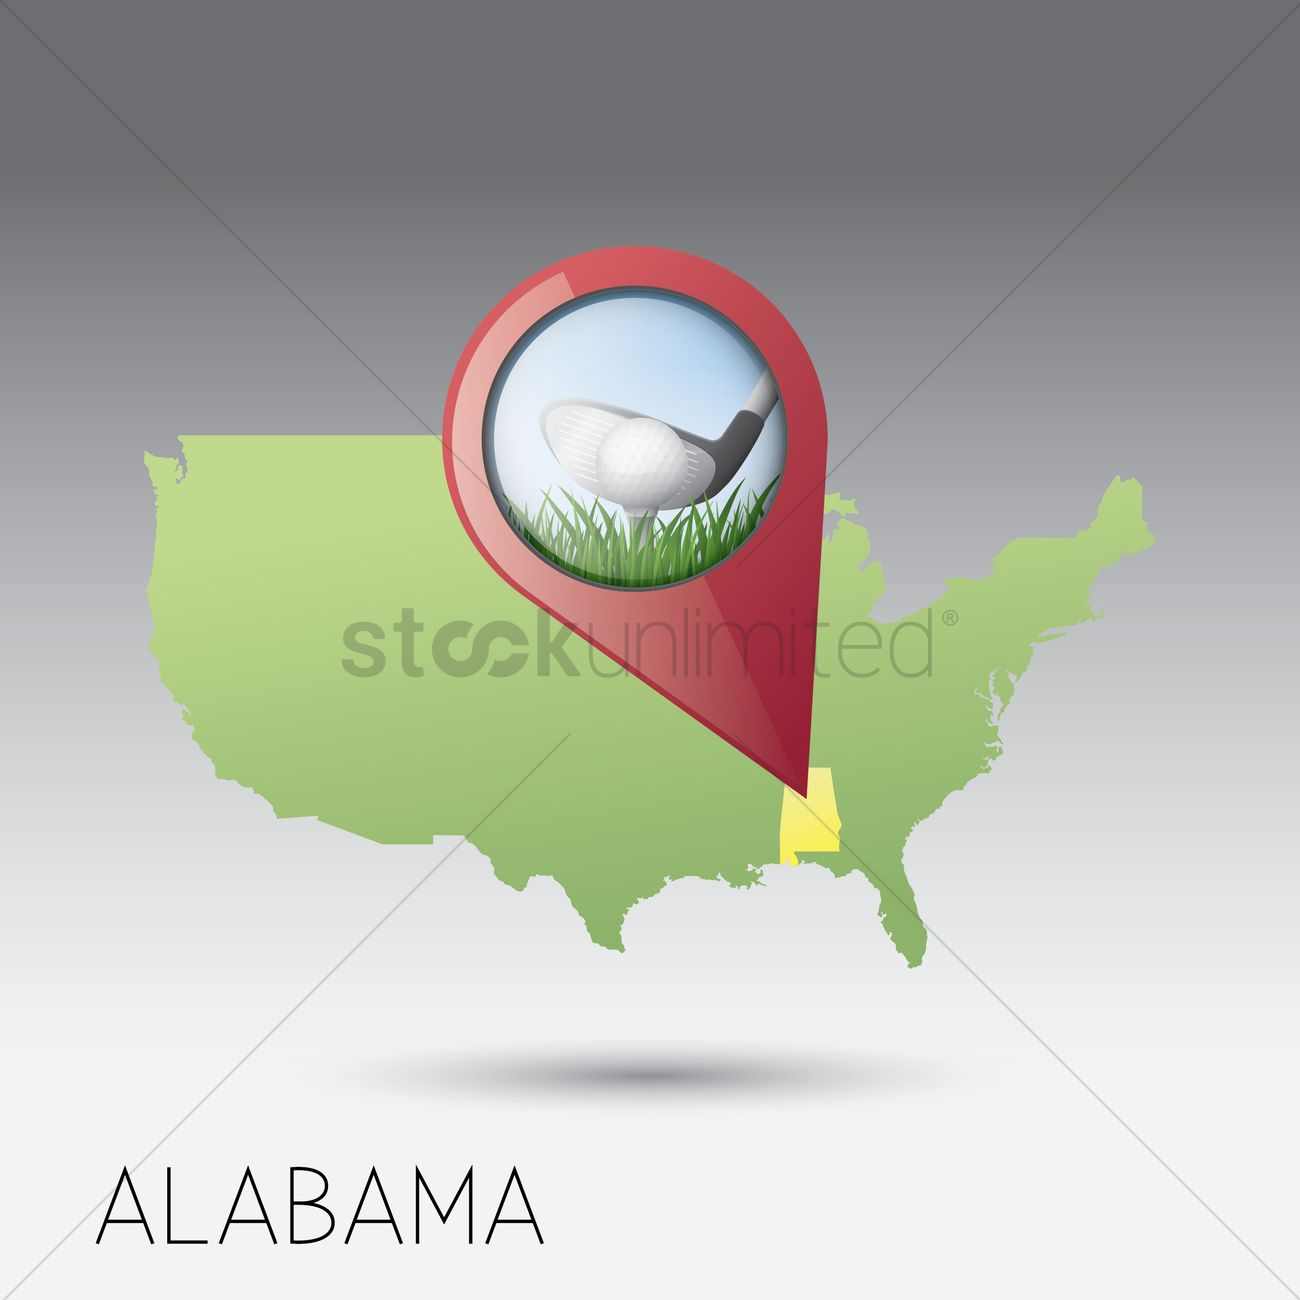 Usa map with alabama state Vector Image - 1536191 ... Map Of Alabama Usa on map of nevada usa, map of georgia usa, map of st. vincent and the grenadines, map of america usa, map of san antonio usa, map of northeastern usa, map of northwestern usa, map of midwest states usa, map of southern usa, map of the south usa, map of carolinas usa, map delaware usa, map arkansas usa, map of washington dc usa, map of richmond usa, map of mexico usa, map of southeast usa, map of boston usa, colorado map usa, map of pacific northwest usa,